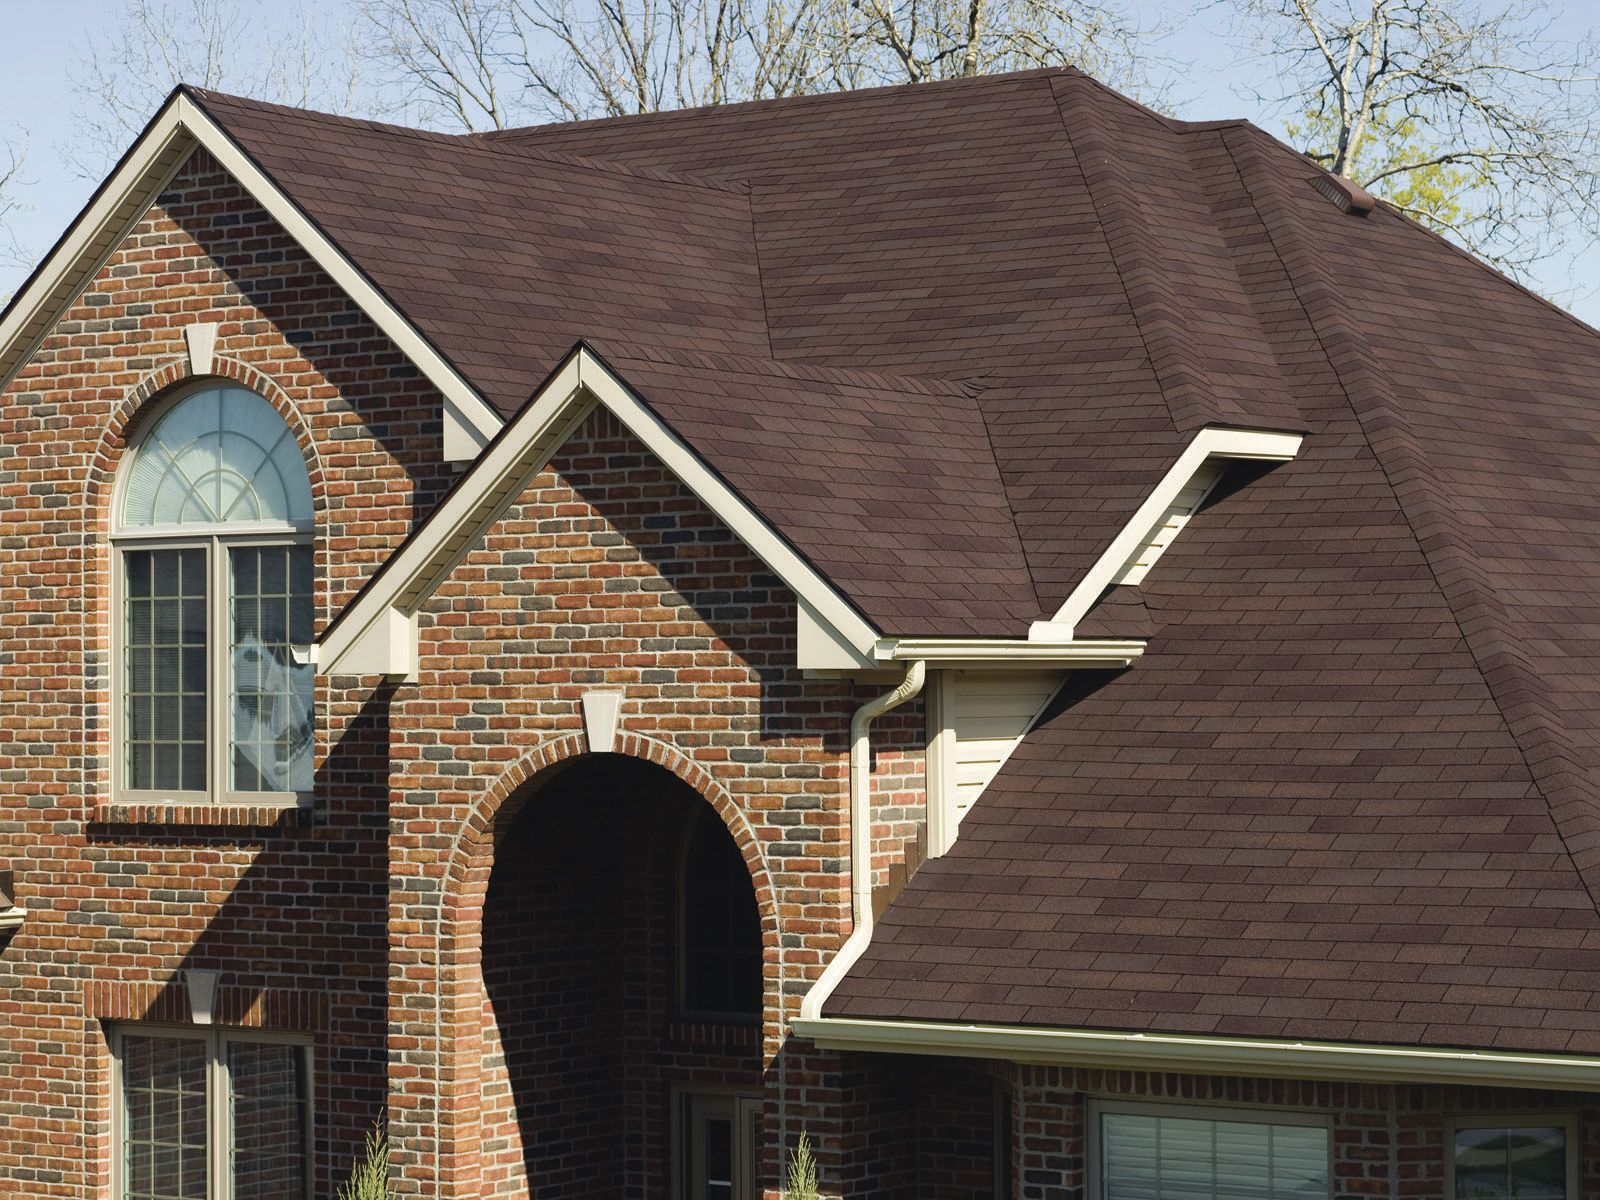 Owens Corning Classic Shingles Give Your Home Good Looks And Lasting Protection Featuring Durable Weathering Grade Asphalt And T Shingling Roof Cost Roofing